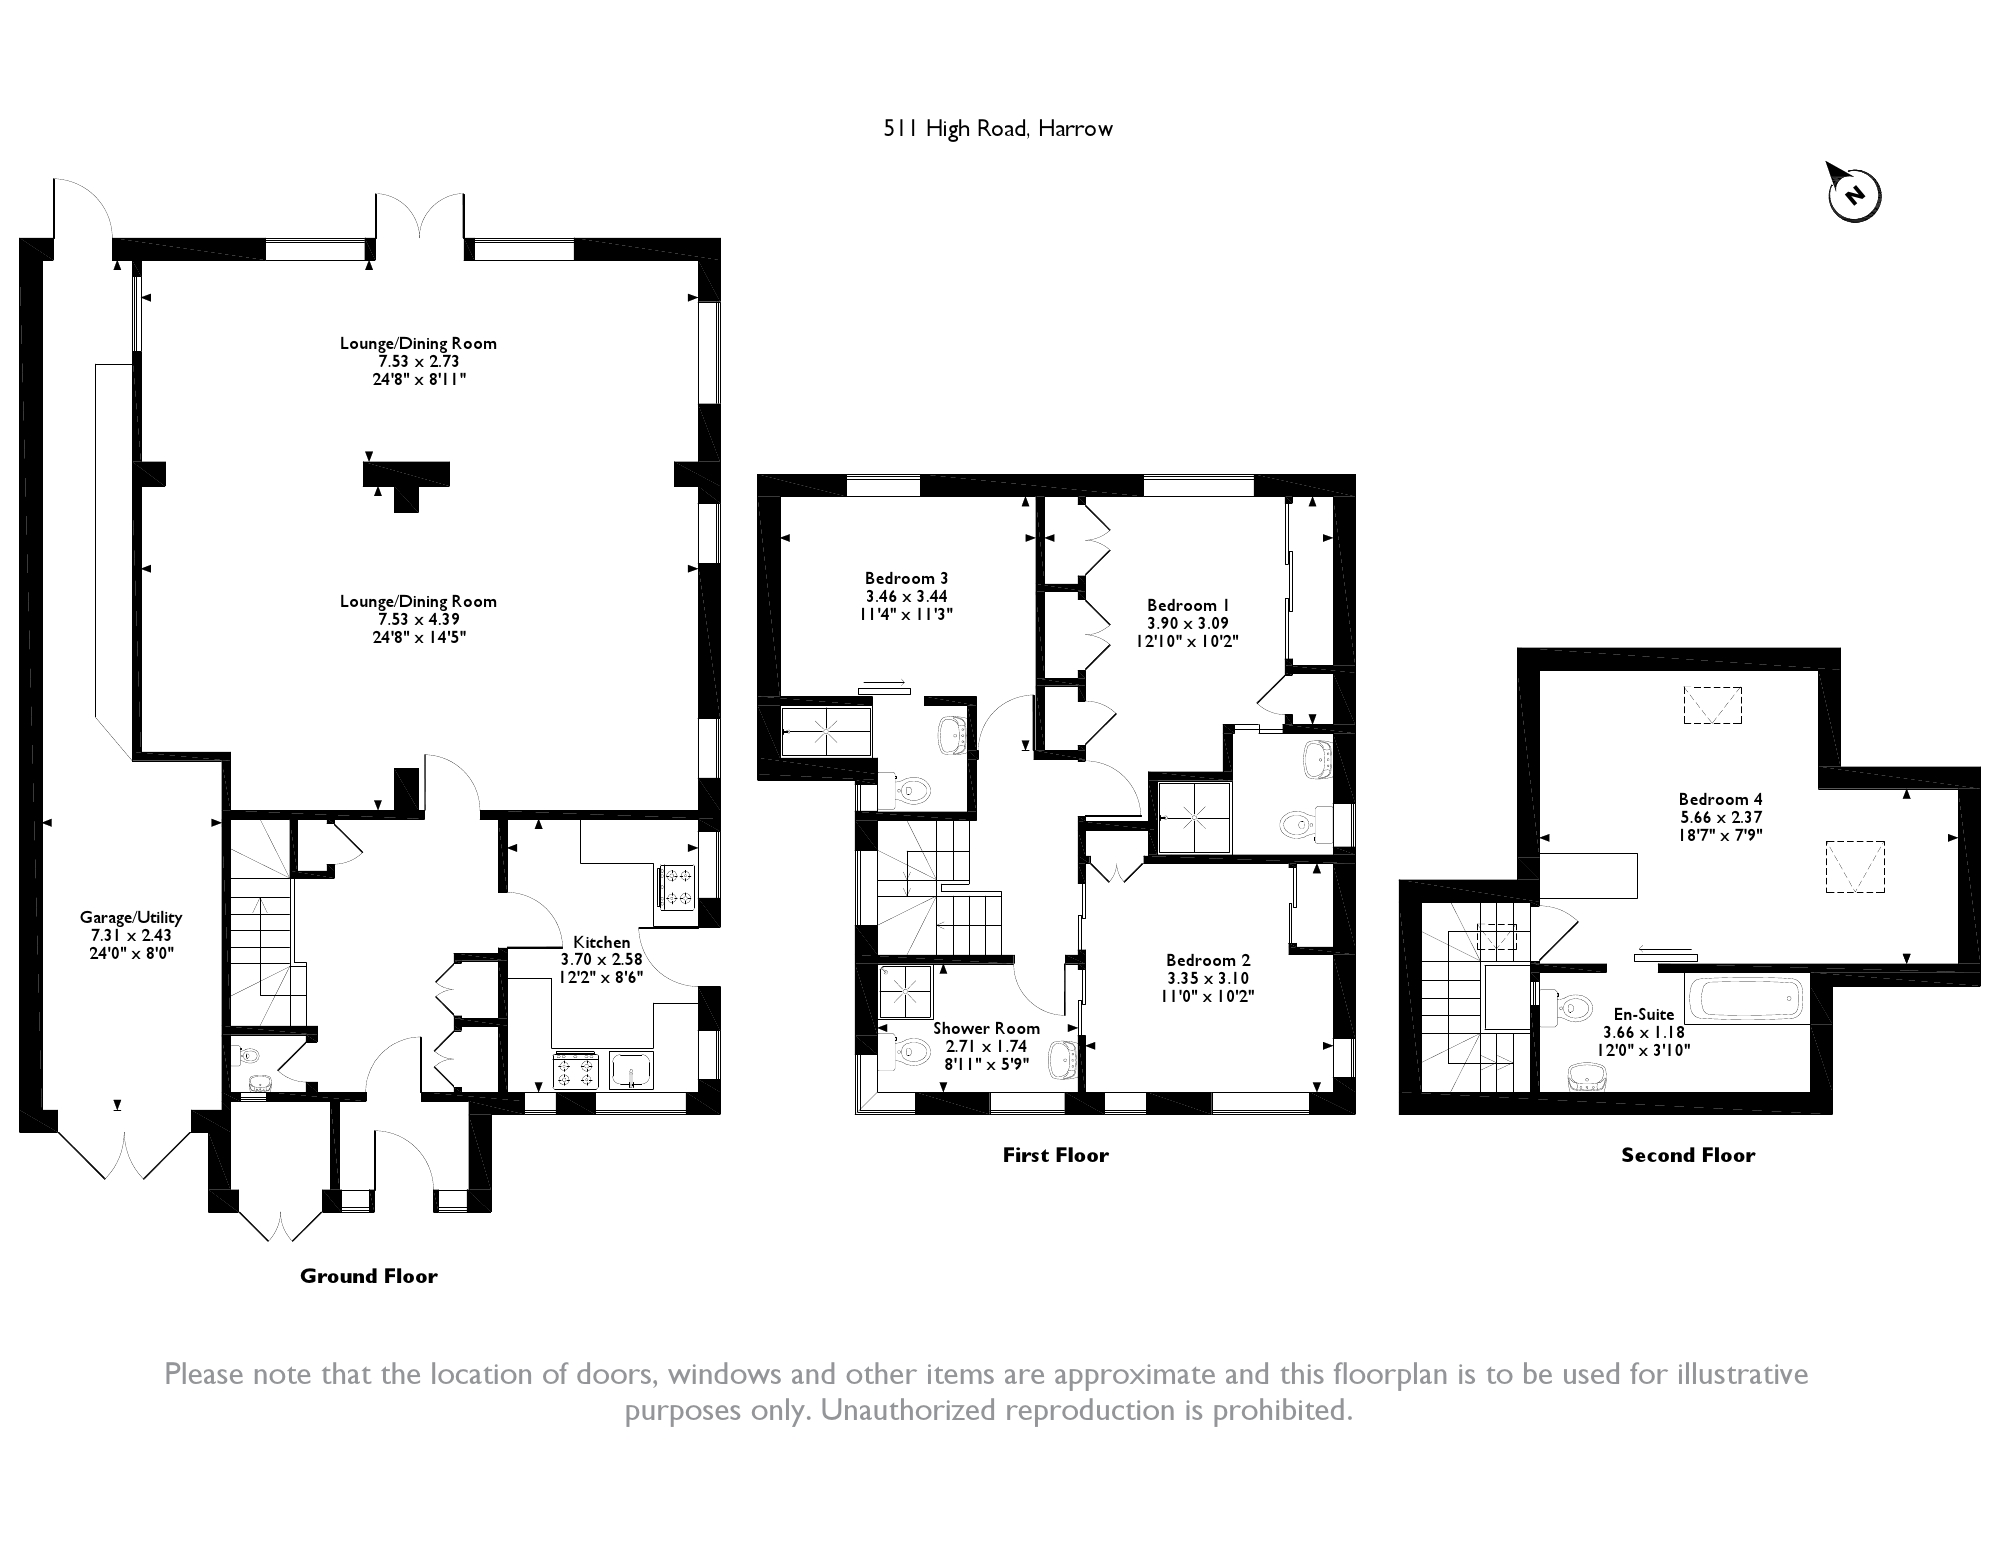 High Road, Harrow, HA3 floor plan